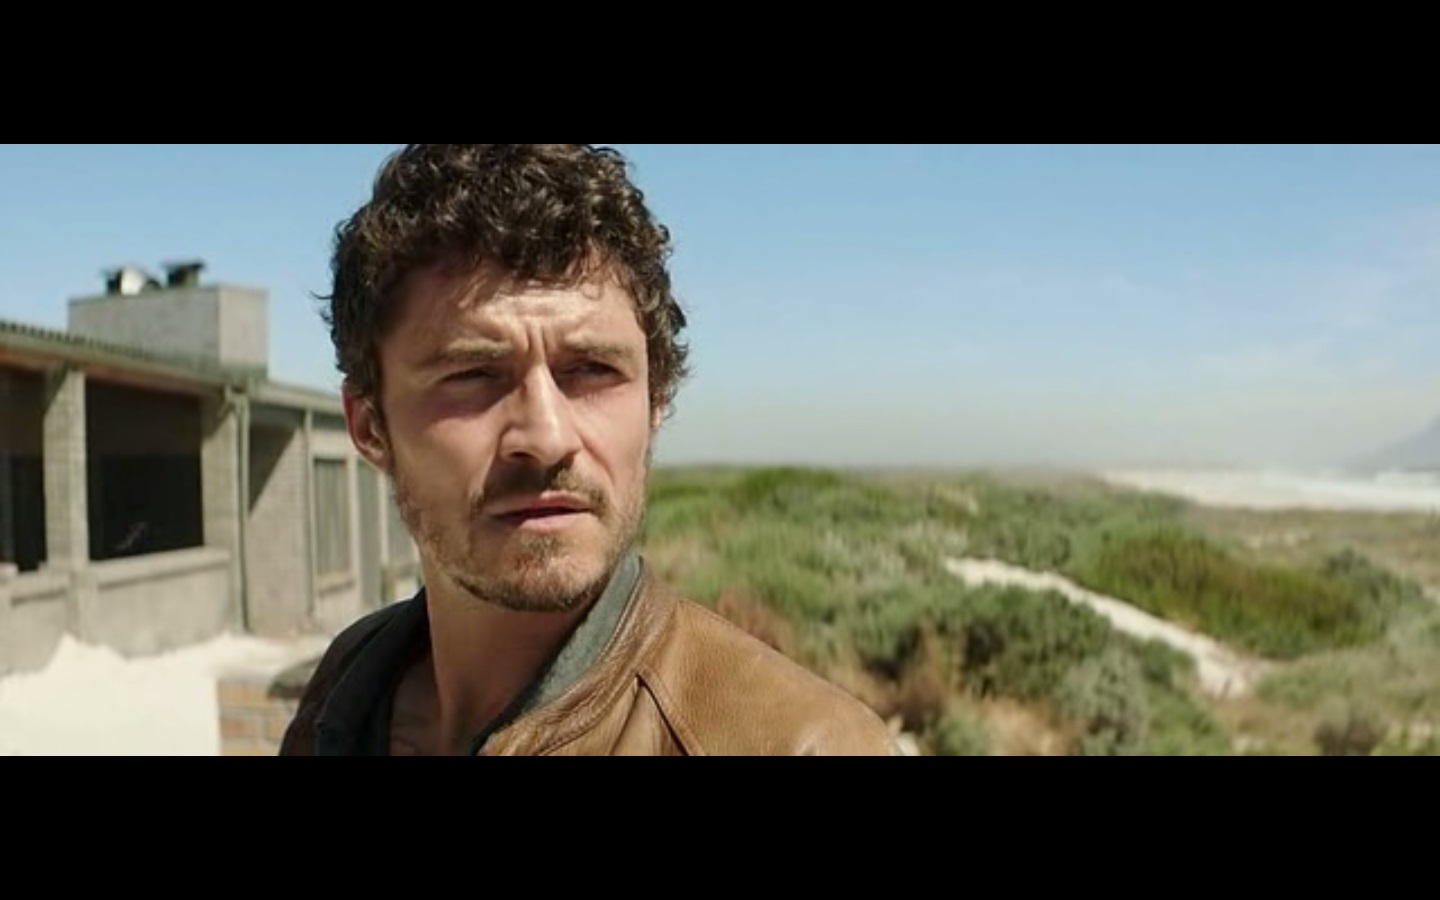 Orlando Bloom Reveals He Goes Fully Nude in Upcoming Film